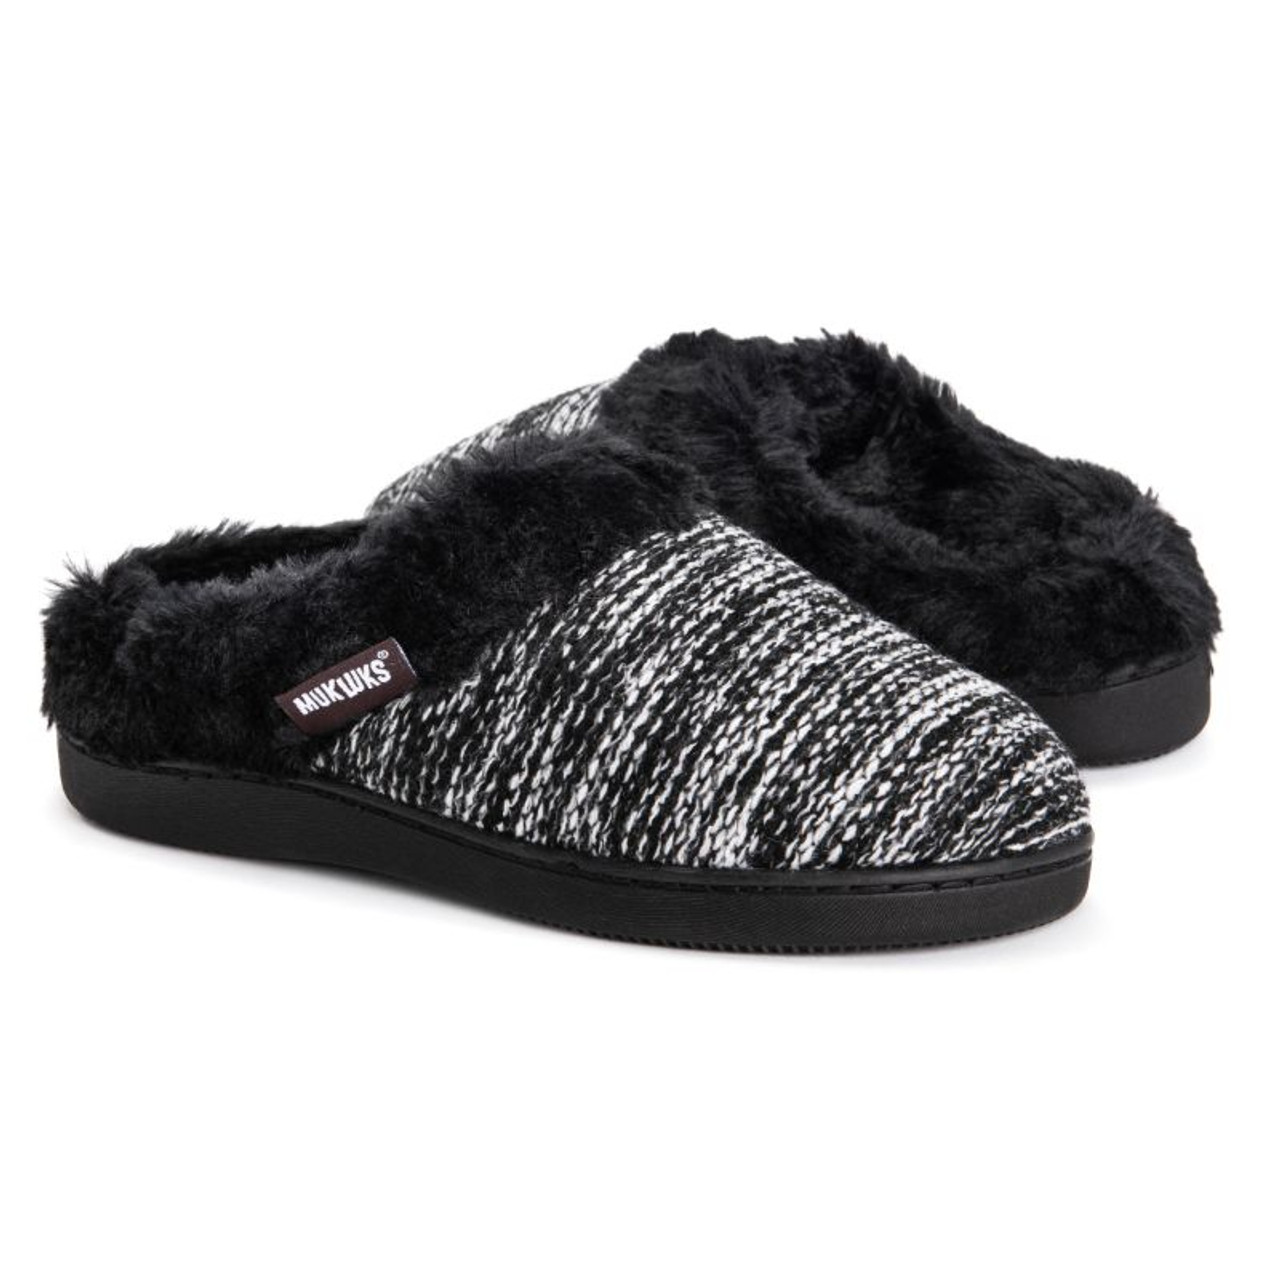 Women's Suzanne Clog Slippers by Muk Luks